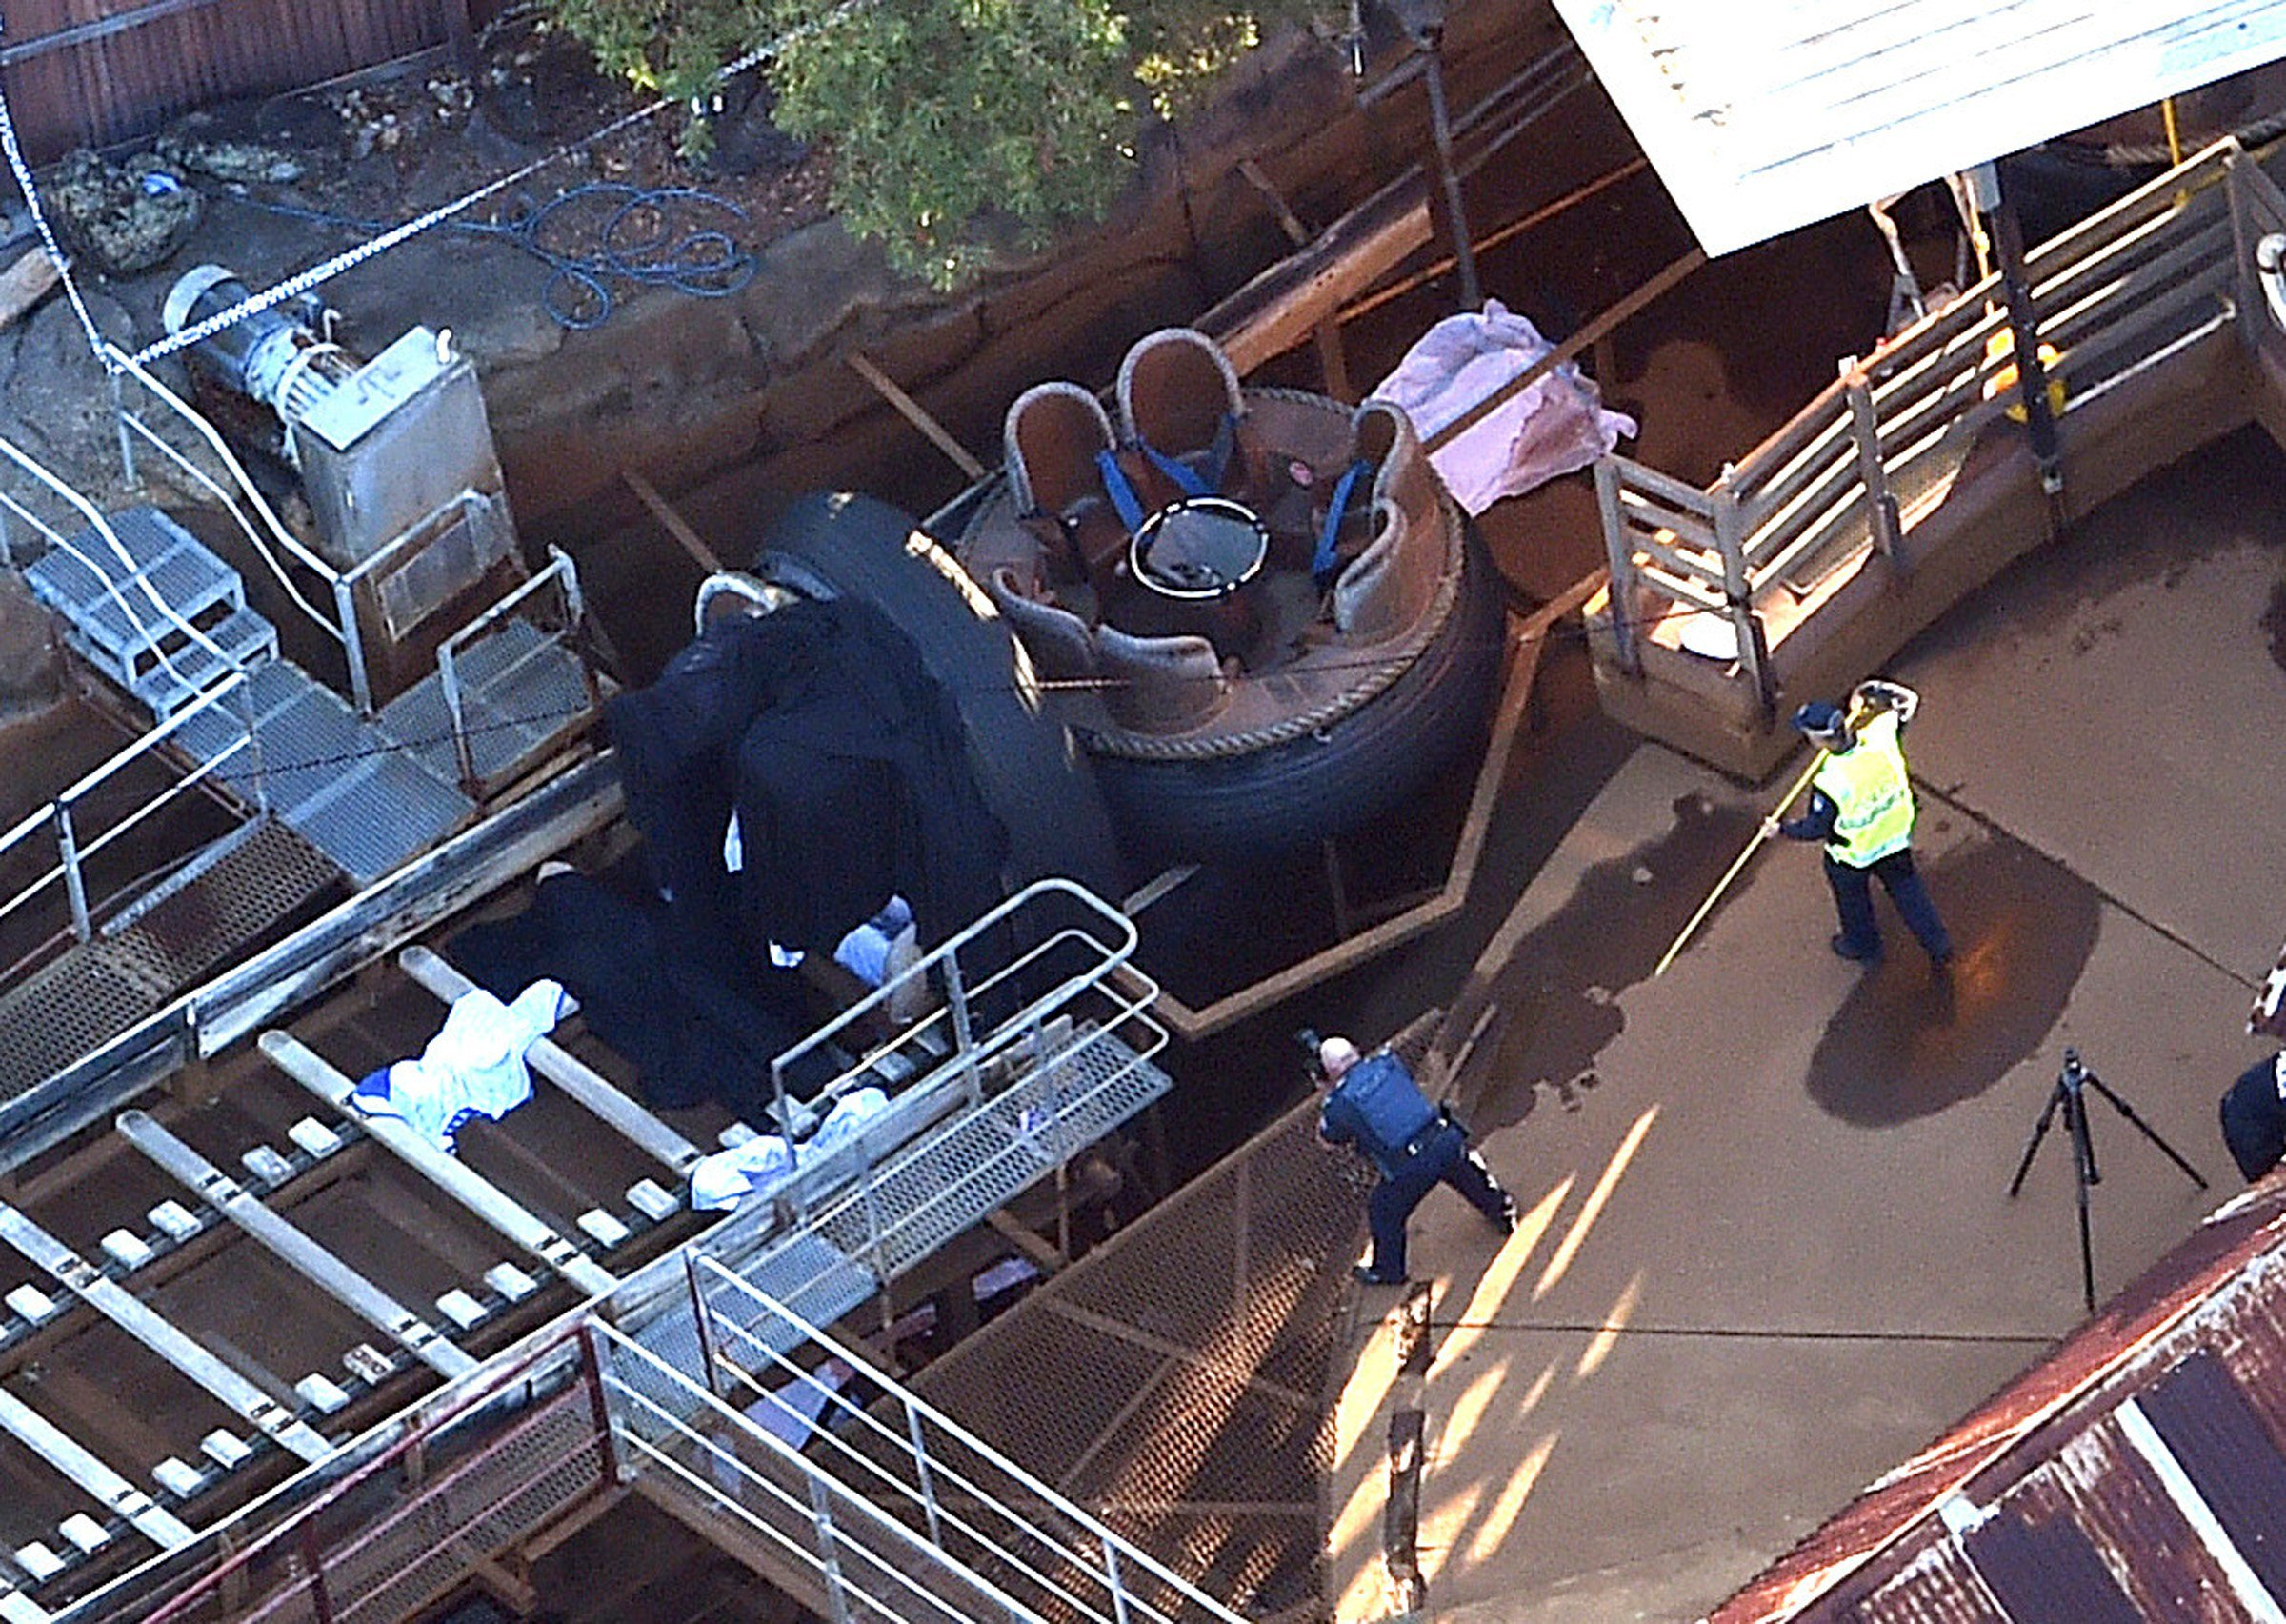 Queensland Emergency Services personnel are seen at the Thunder River Rapids ride at Dreamworld on the Gold Coast, Australia, Tuesday, Oct. 25, 2016. Four people died after a malfunction caused two people to be ejected from their raft, while two others we